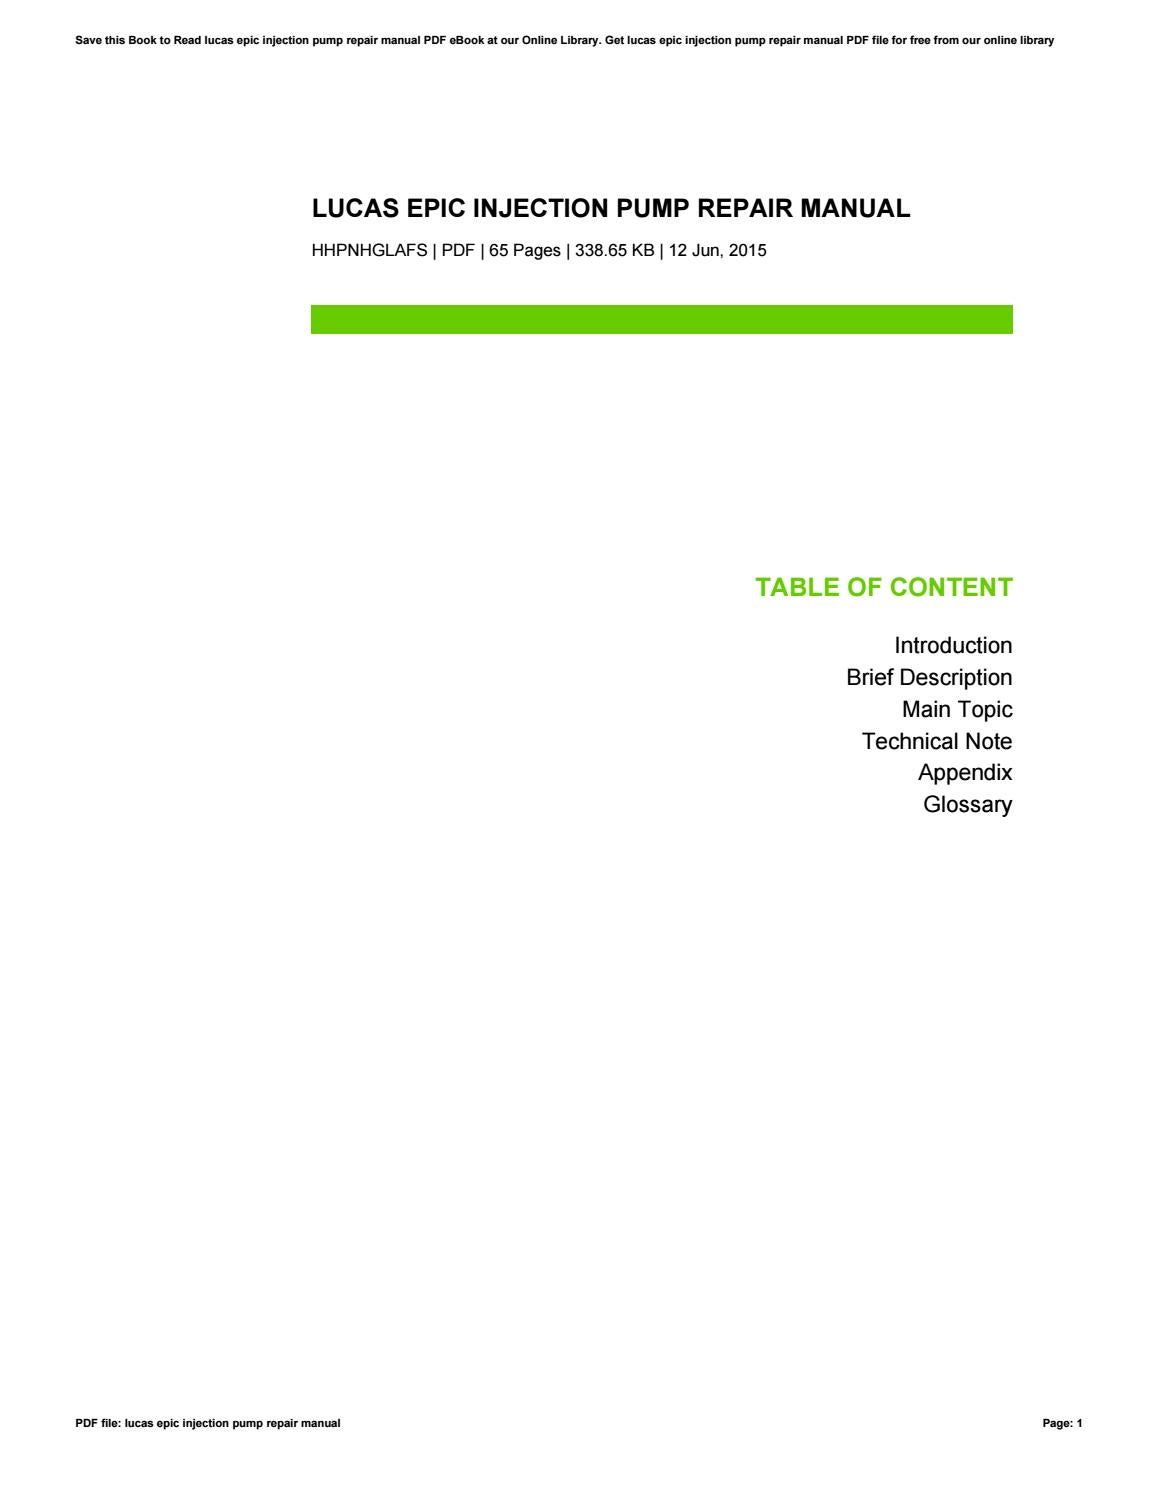 Lucas Epic Injection Pump Repair Manual By